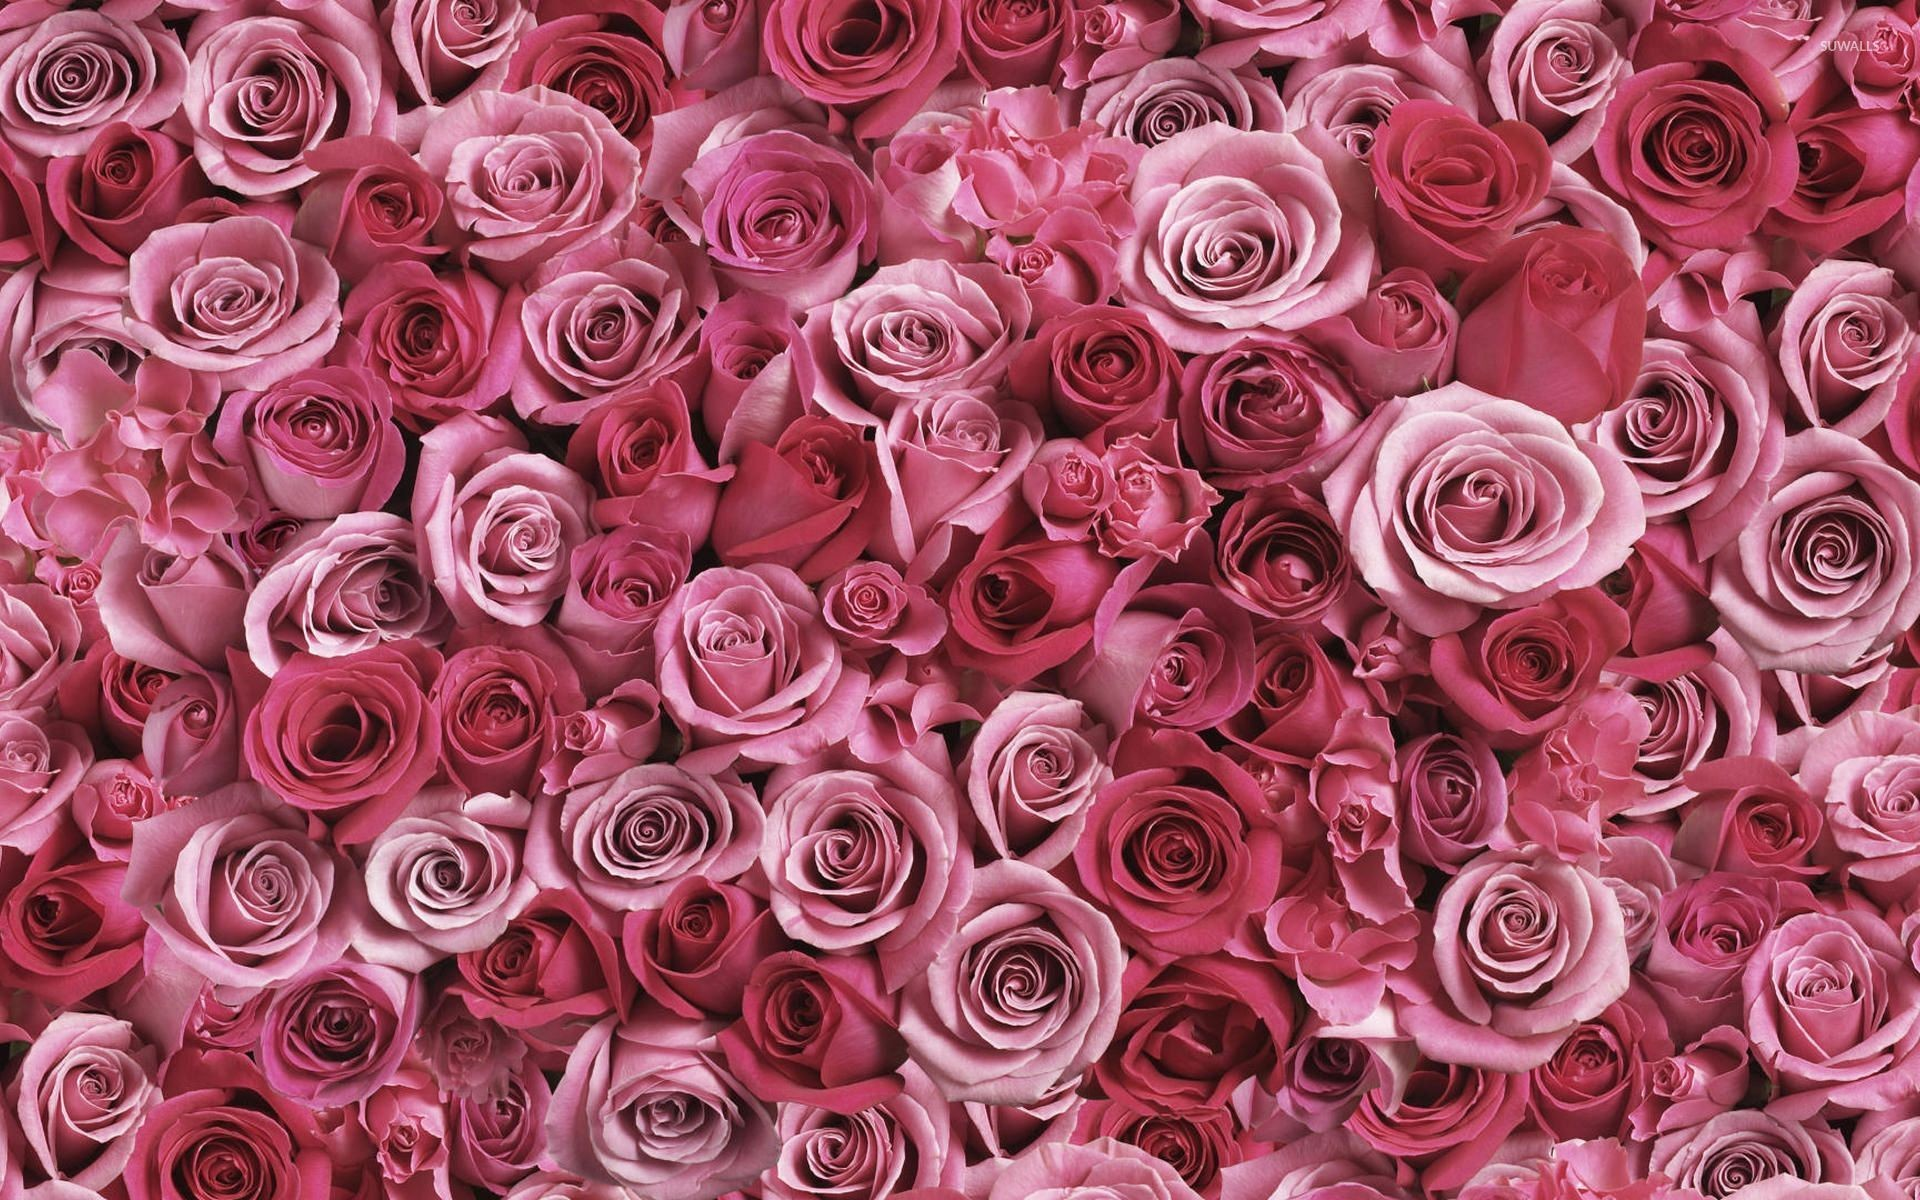 Pink roses wallpapers wallpapertag - Pink rose hd wallpaper ...